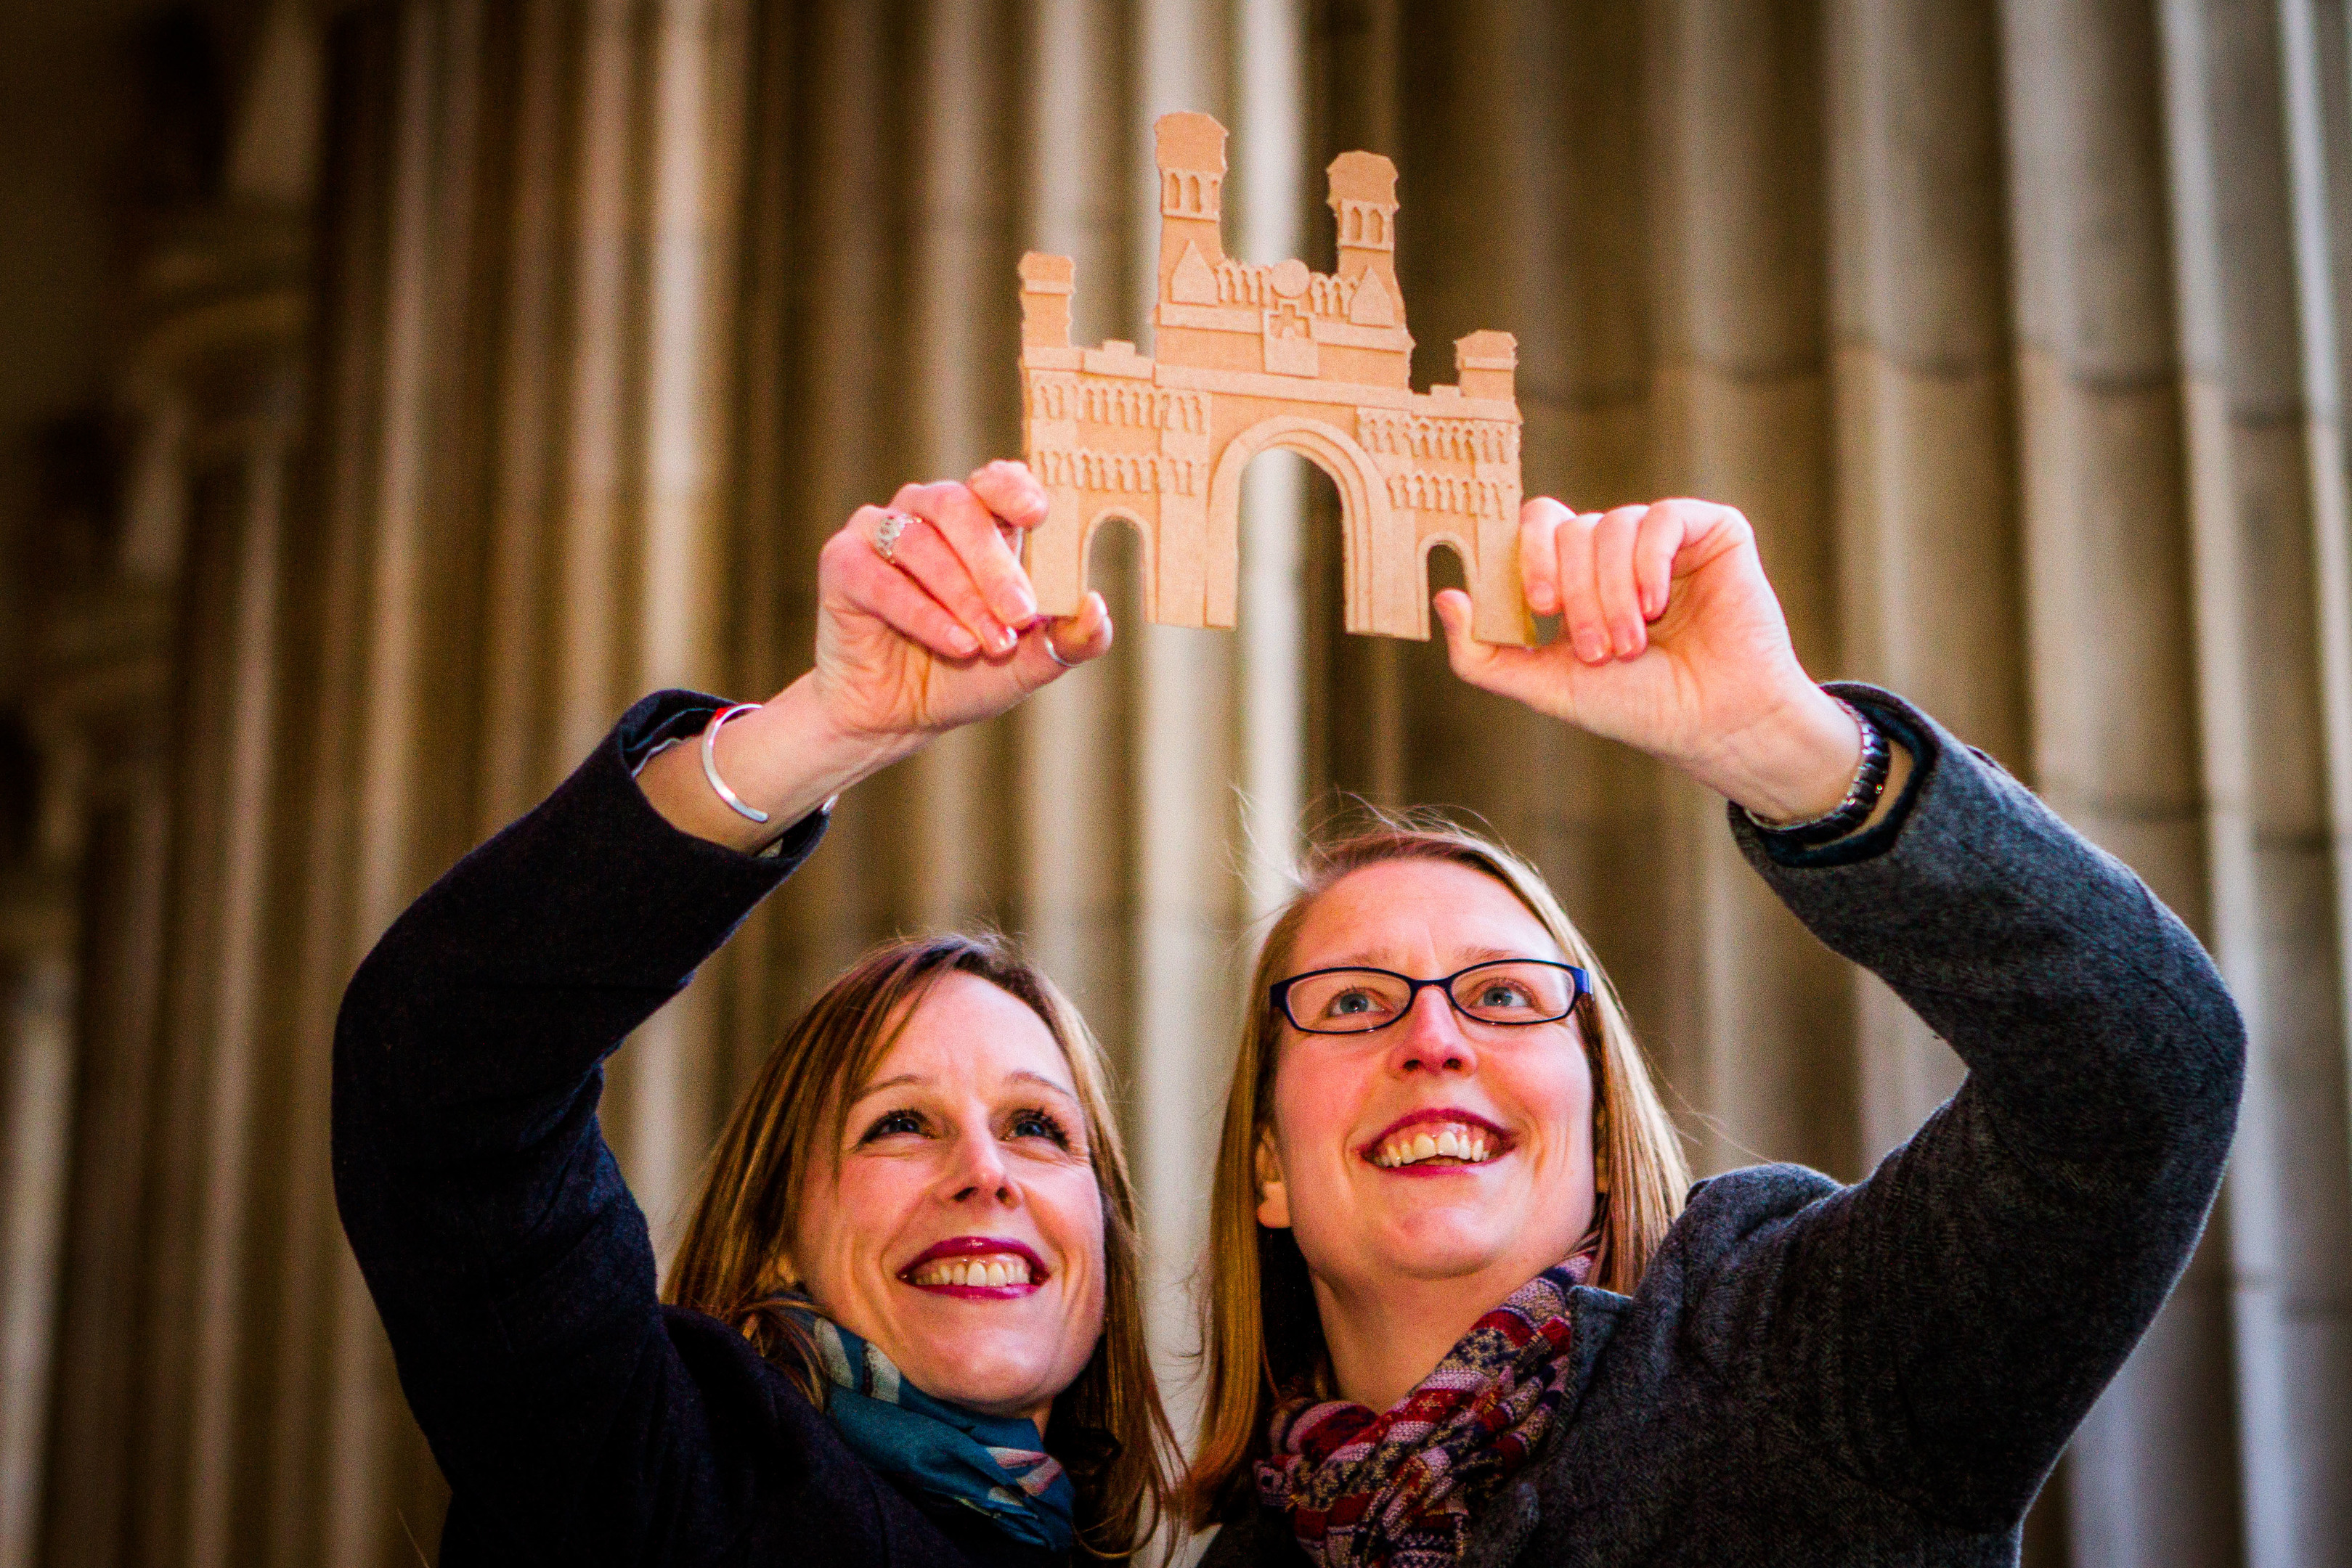 The Royal Arch will be recreated out of cardboard boxes on Slessor Gardens, alongside the V&A development. Pictured is a much smaller scale model of the Royal Arch with Christine Palmer (right, President of Dundee Institute of Architects) and Claire Dow (left, the event producer).